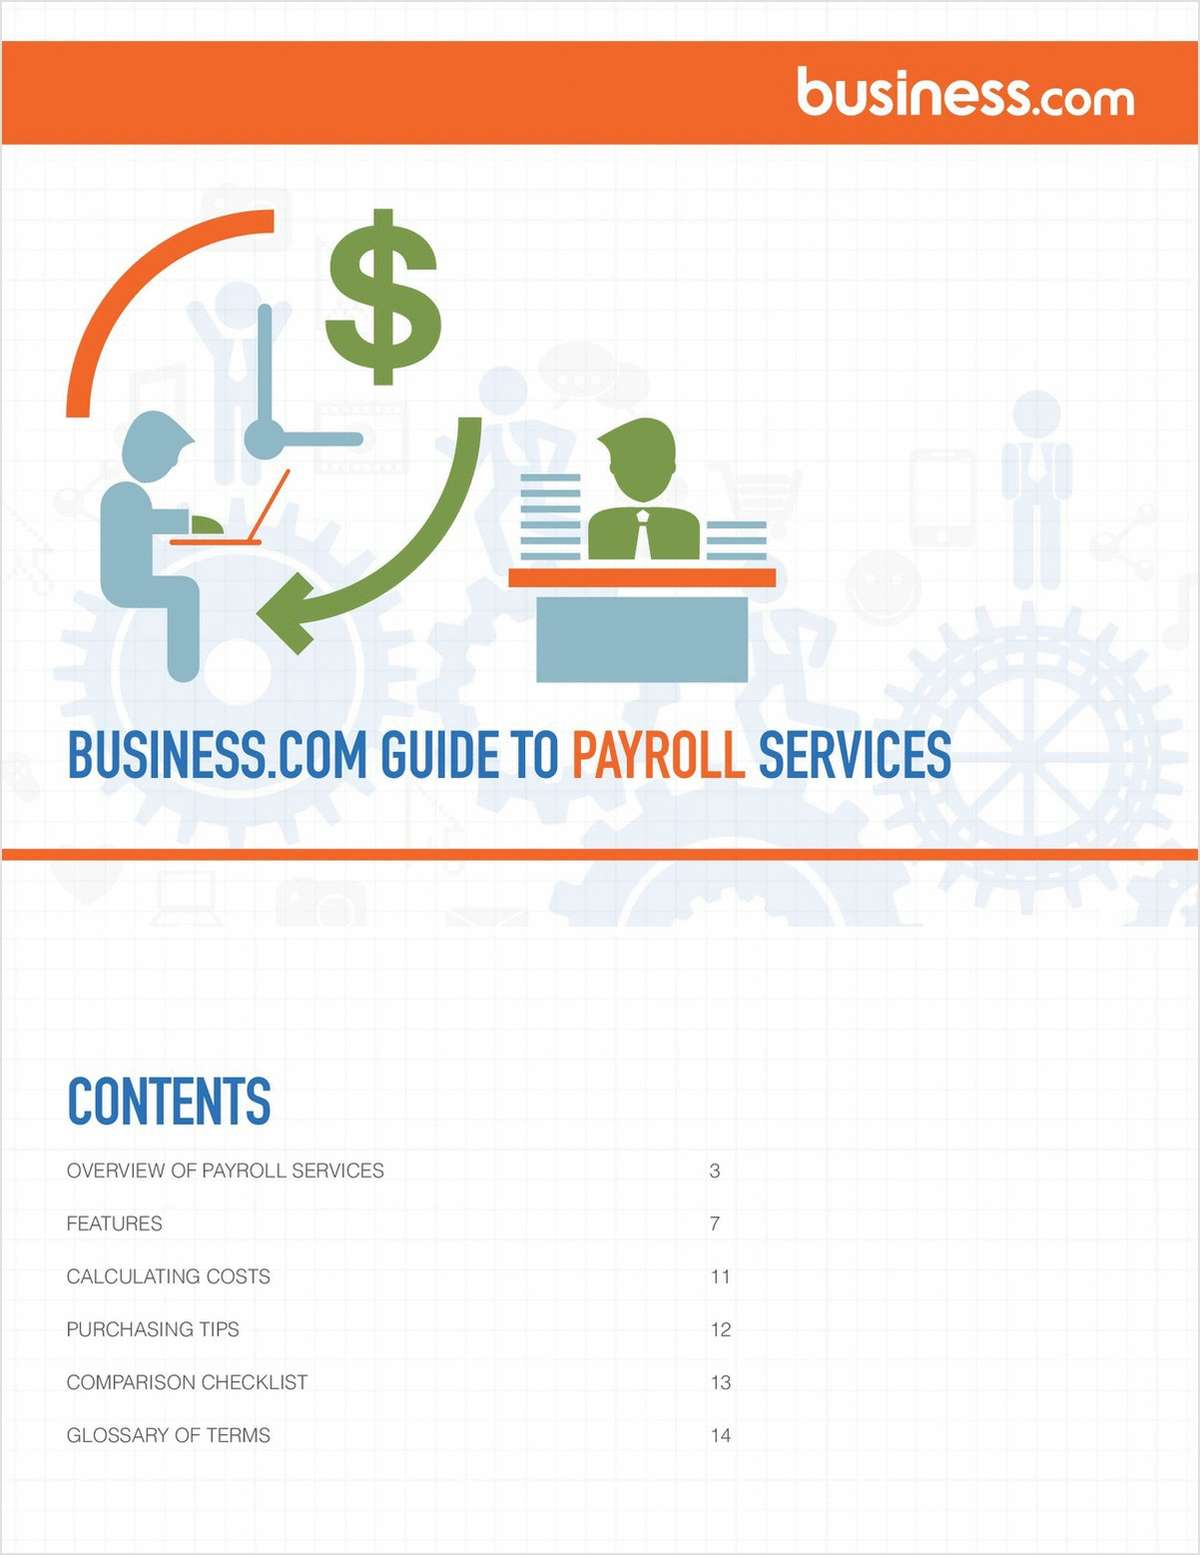 How Online Payroll Services Are Benefitting Small Business Owners